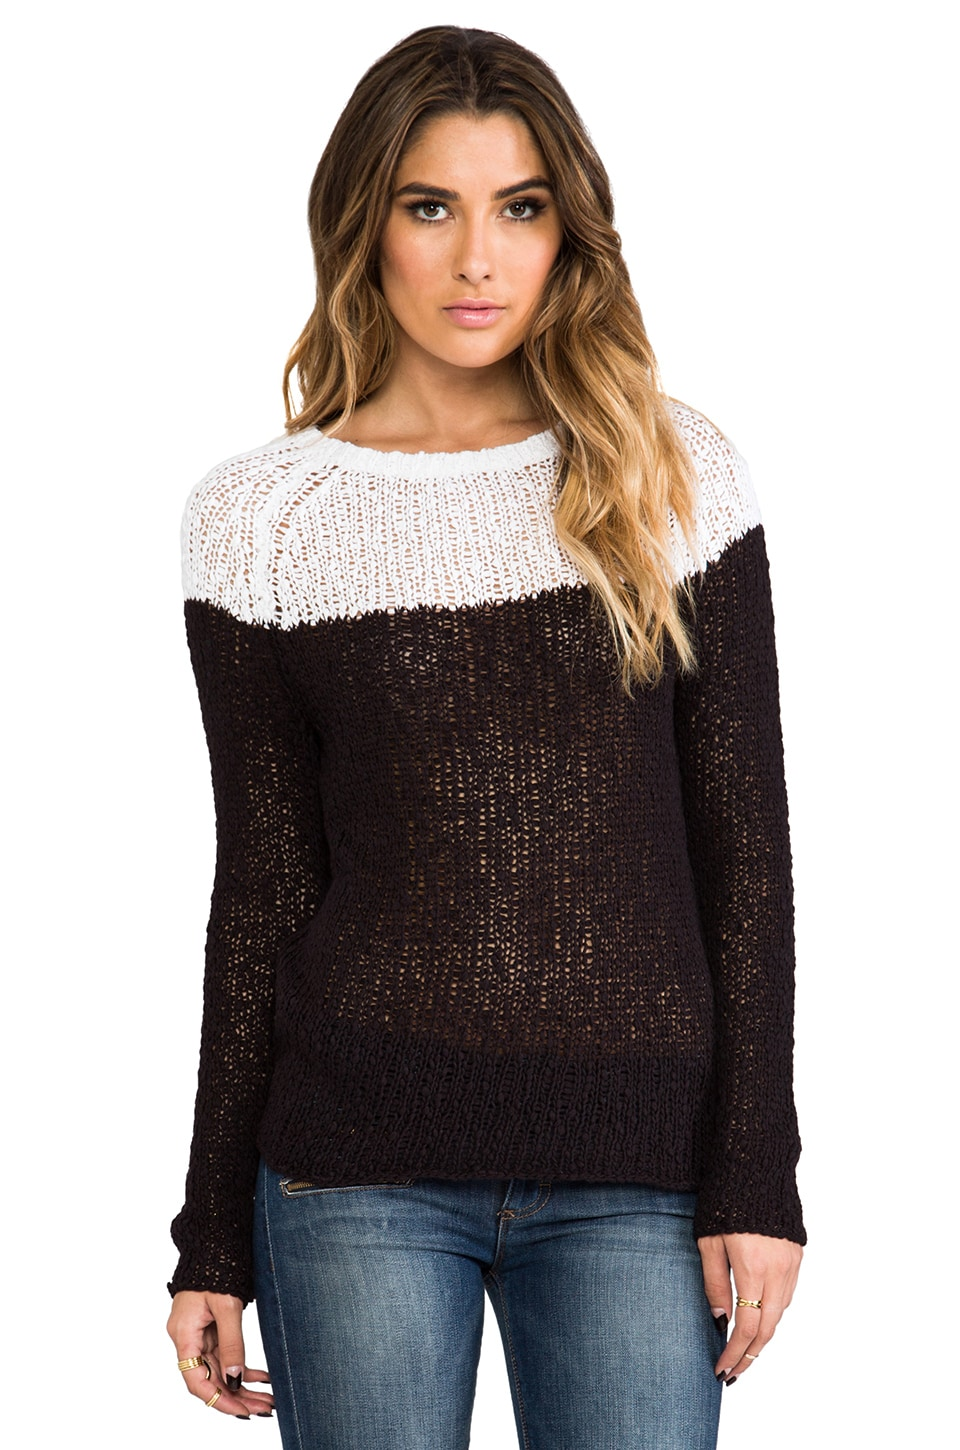 360CASHMERE Ellie Colorblock Sweater in White & Black